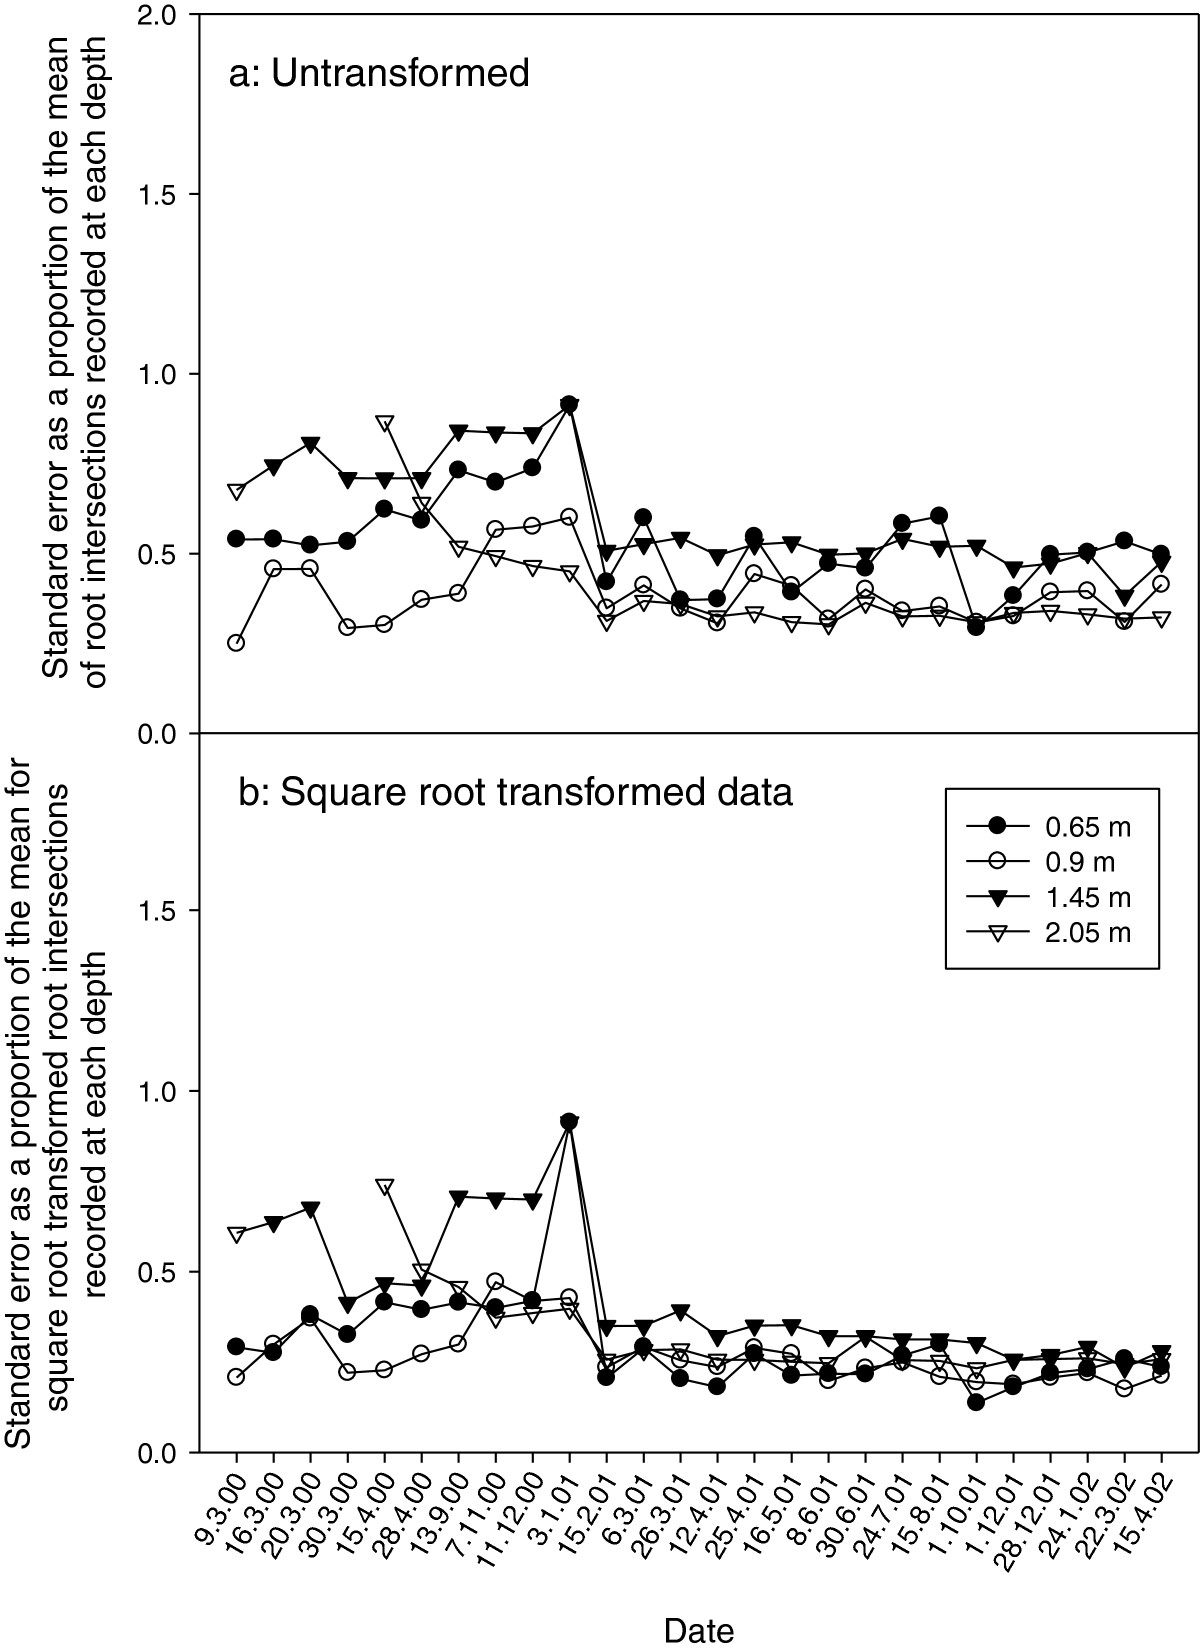 http://static-content.springer.com/image/art%3A10.1186%2F1746-4811-9-3/MediaObjects/13007_2012_Article_224_Fig3_HTML.jpg